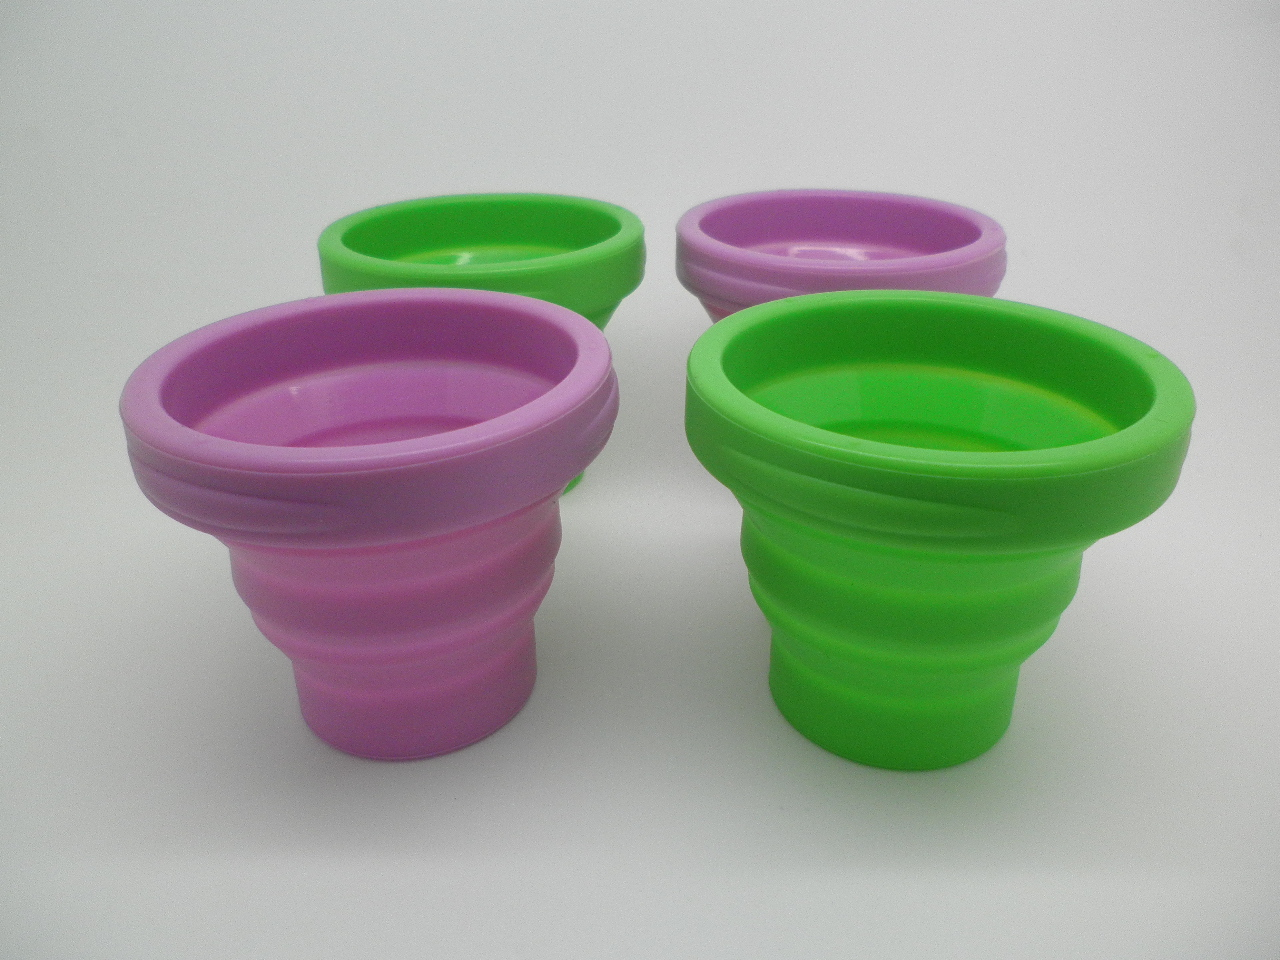 http://www.refinehksilicone.cn/data/images/product/20180416173150_214.JPG